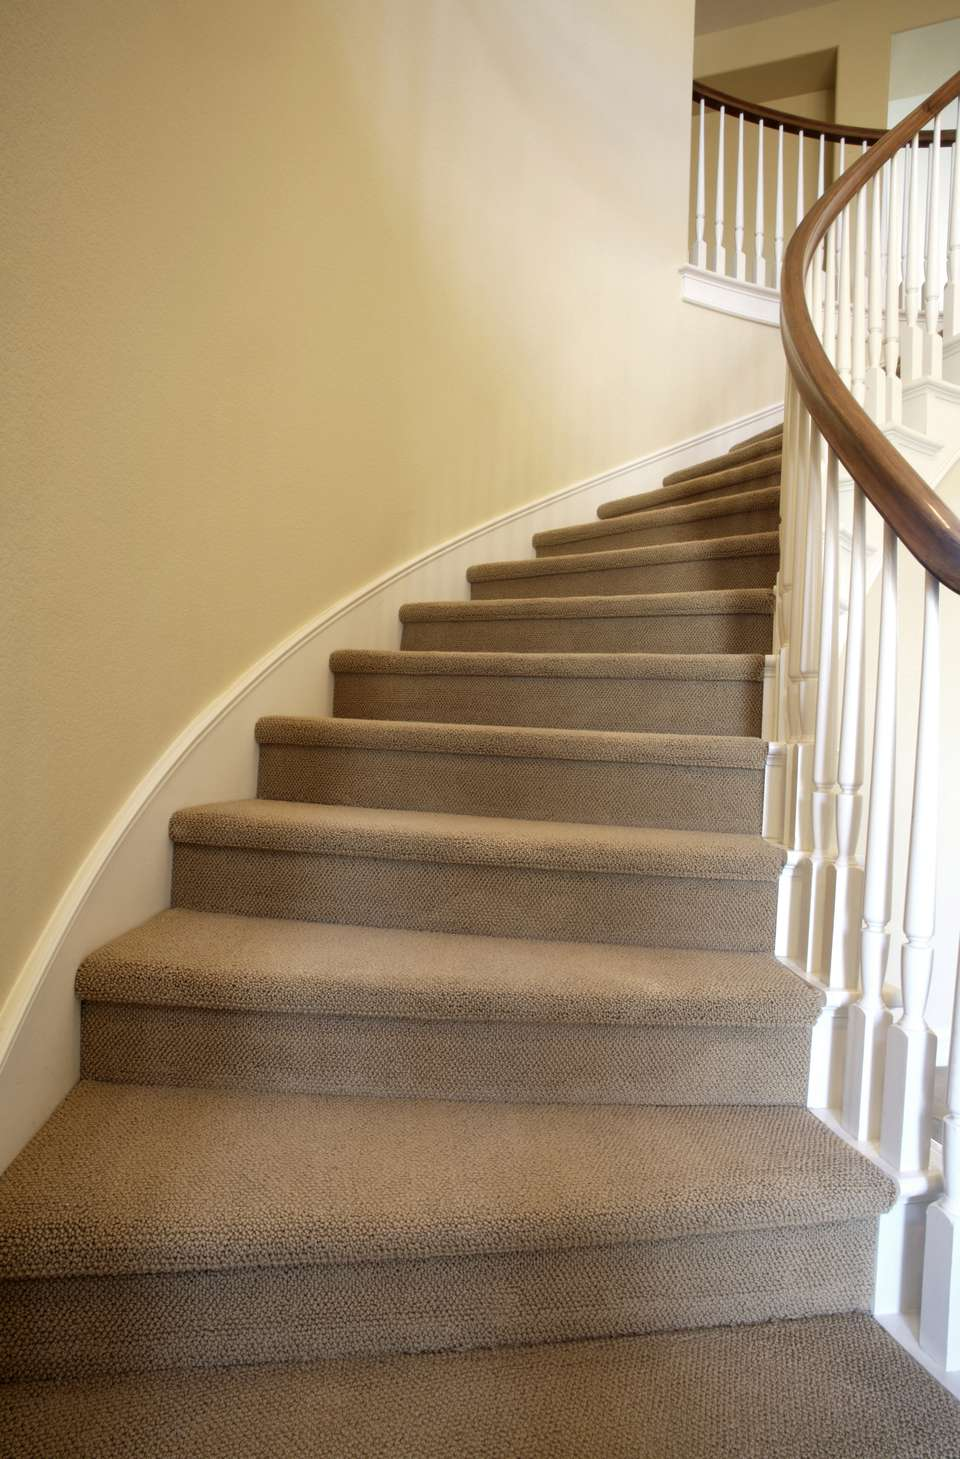 Curved staircase featuring neutral beige carpet